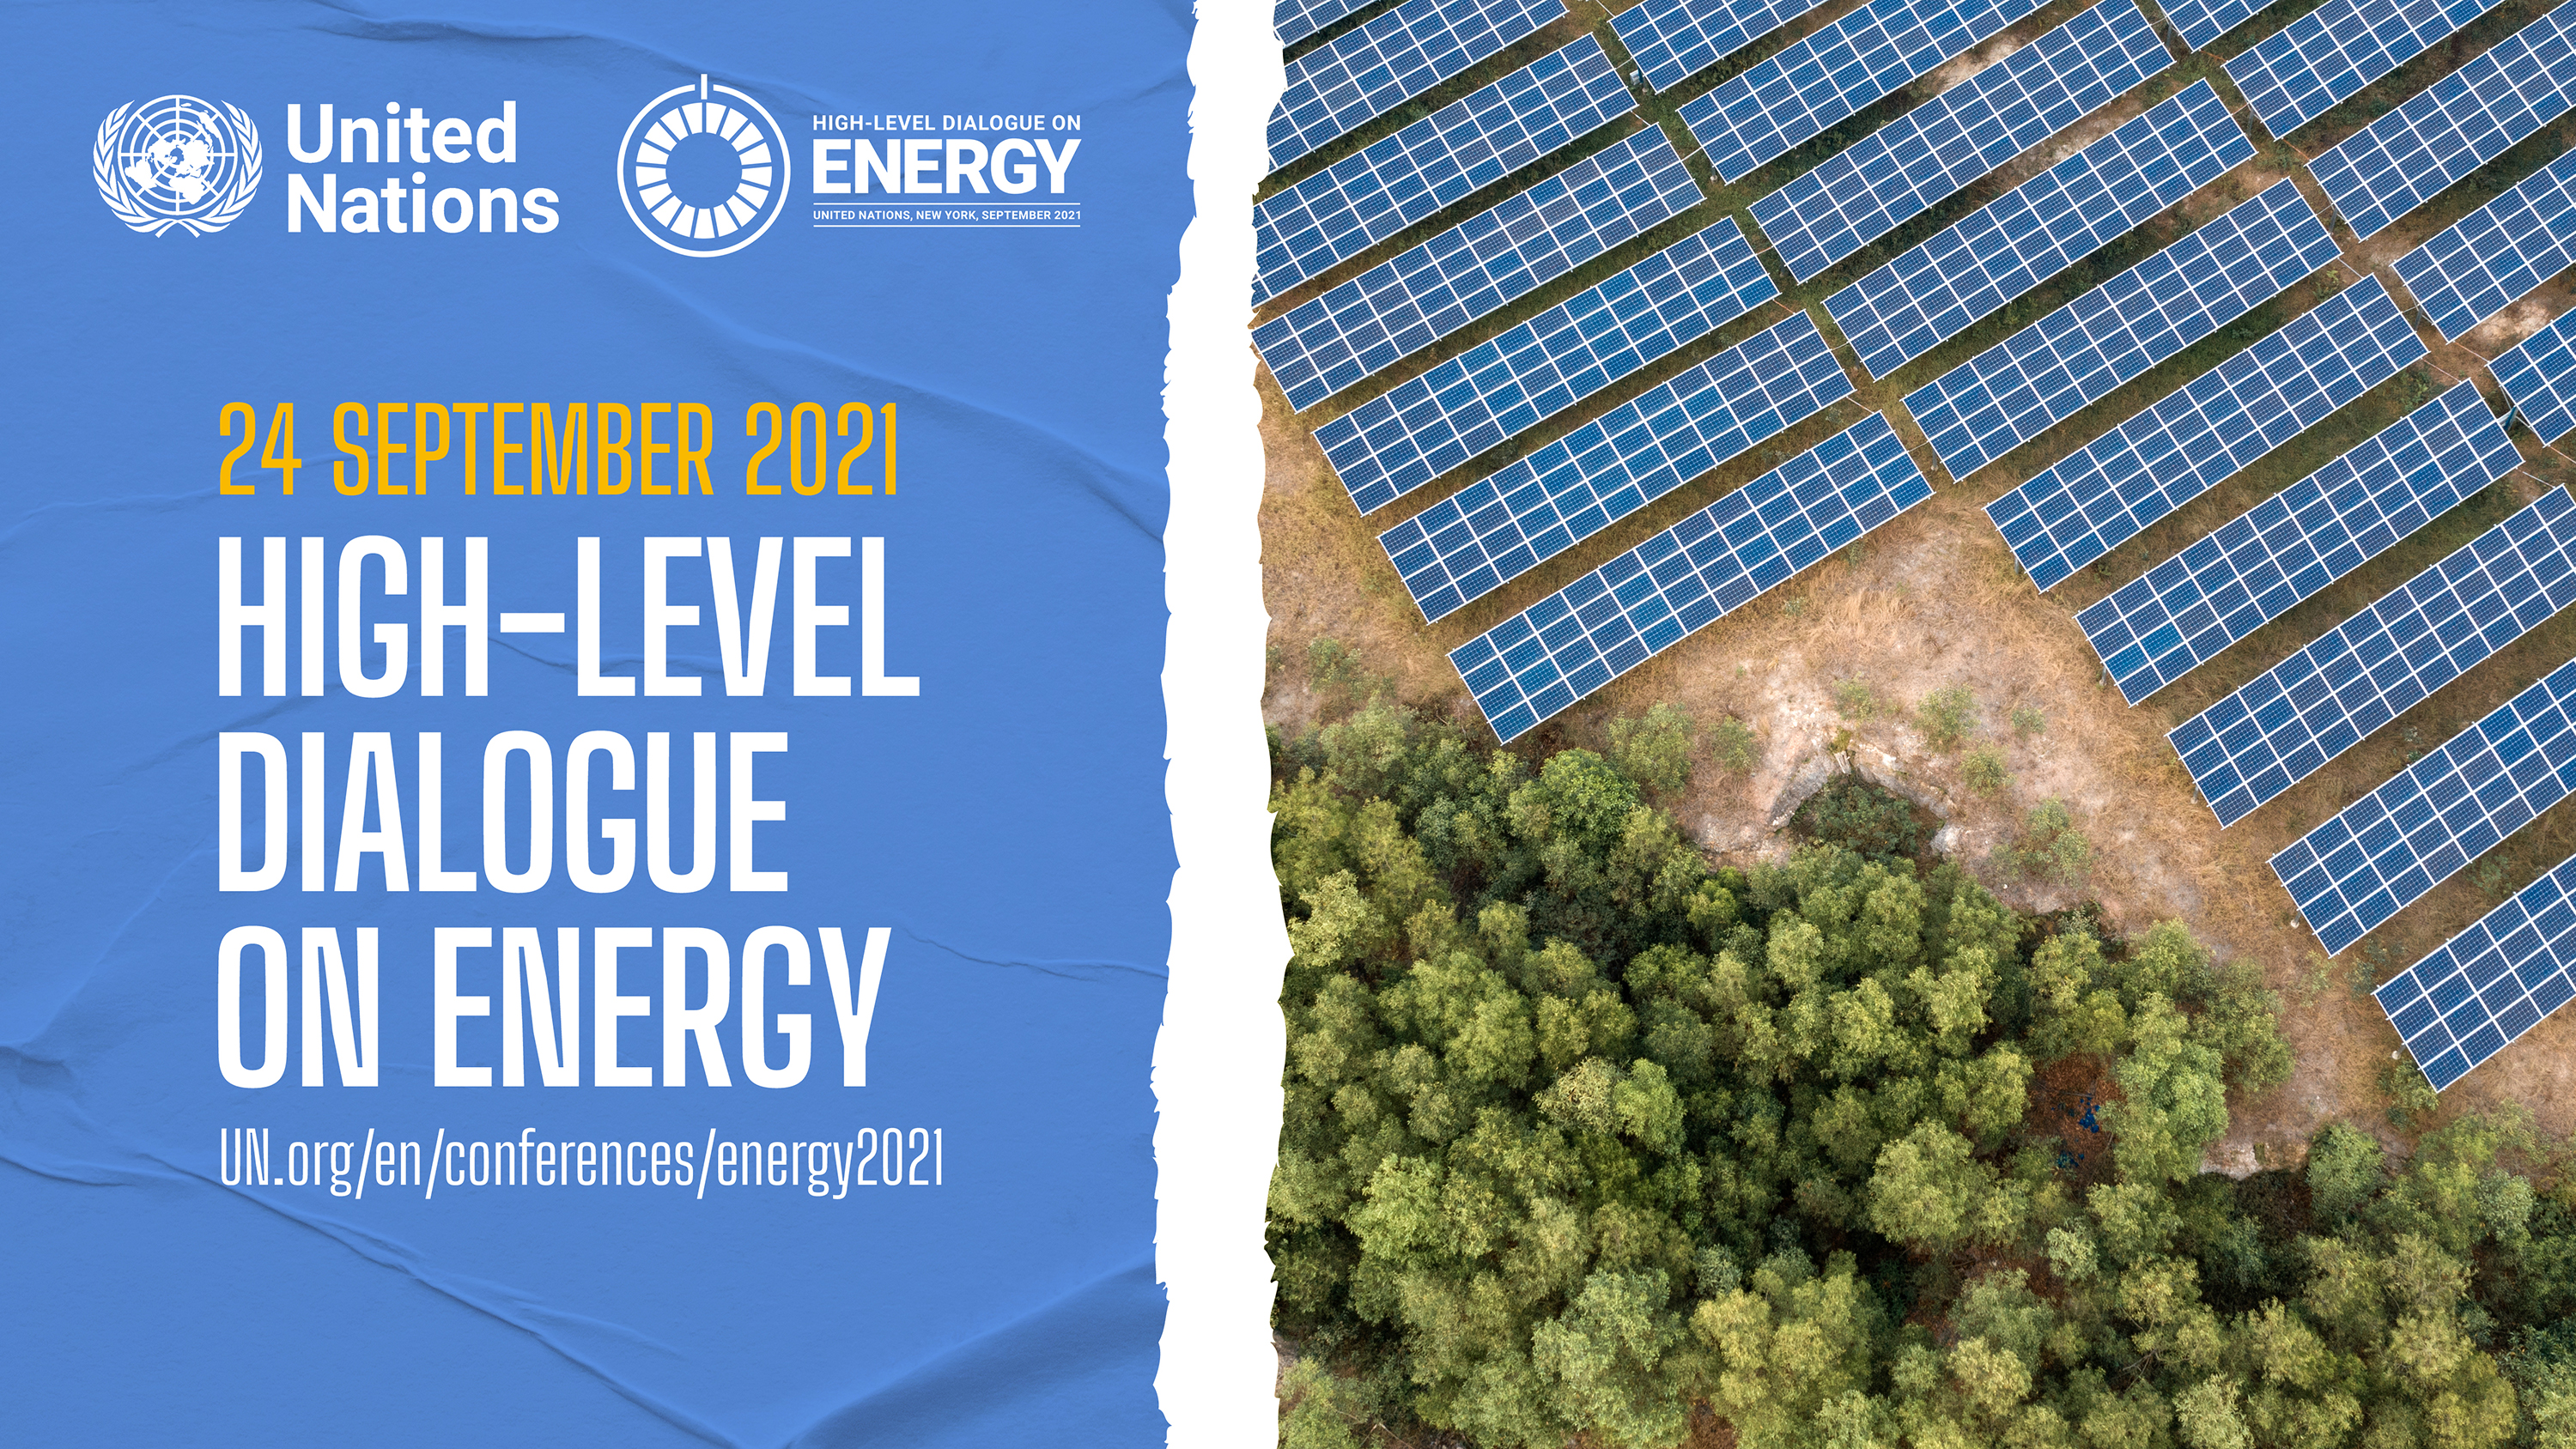 New commitments at UN energy summit a major stride towards affordable and clean energy, but much work ahead to halve energy access gap by 2025